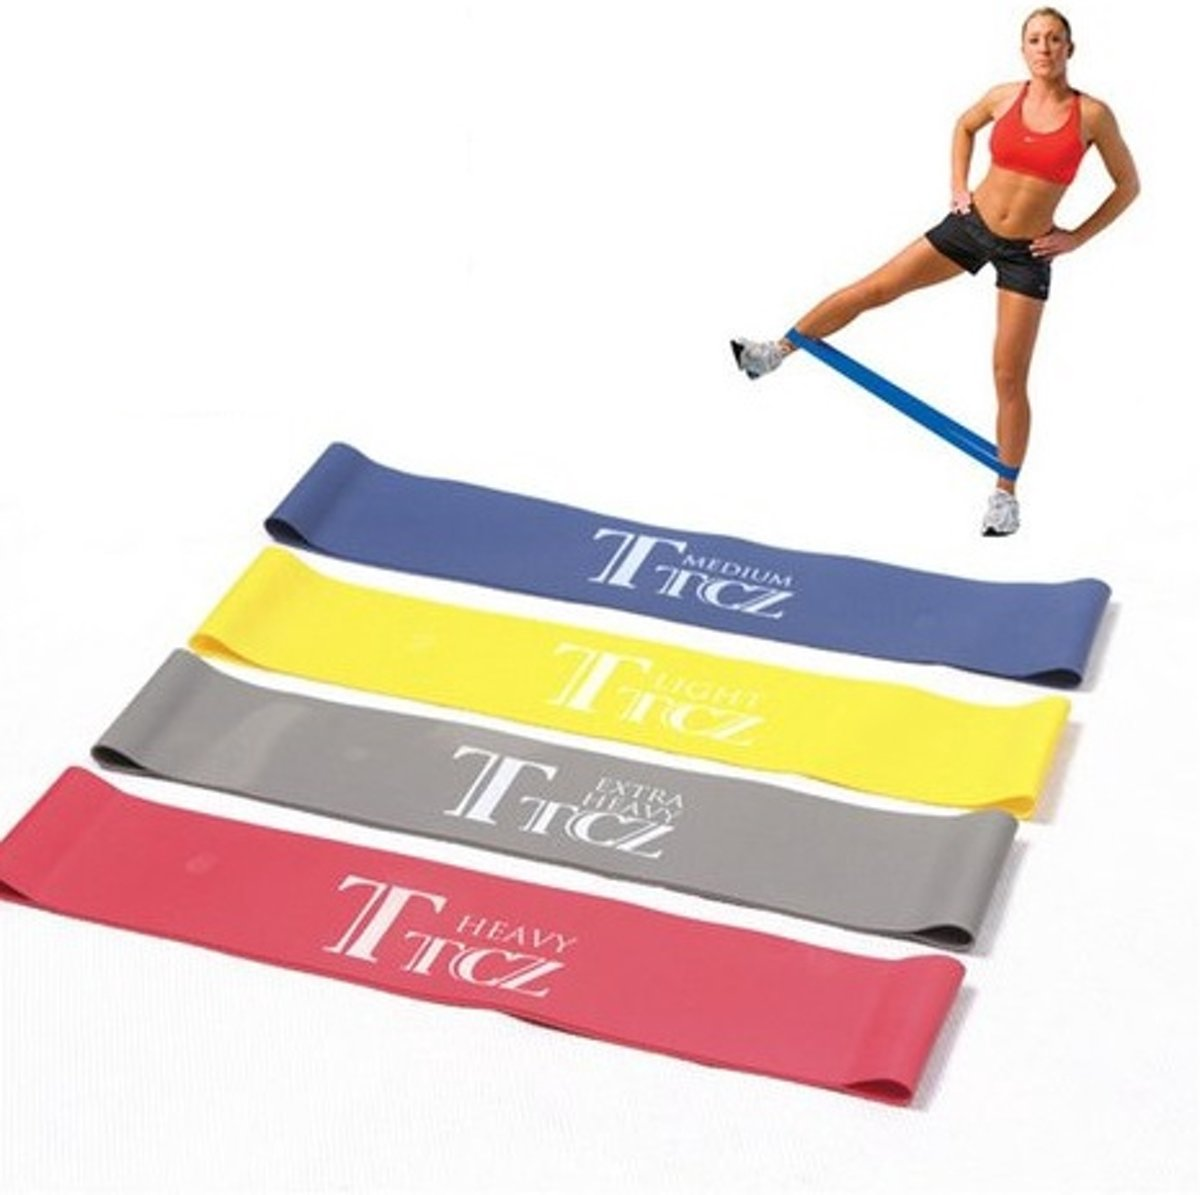 Fitness Elastiek Set - Resistance Power Band Tube - Fitnessbanden / Weerstandskabel kopen